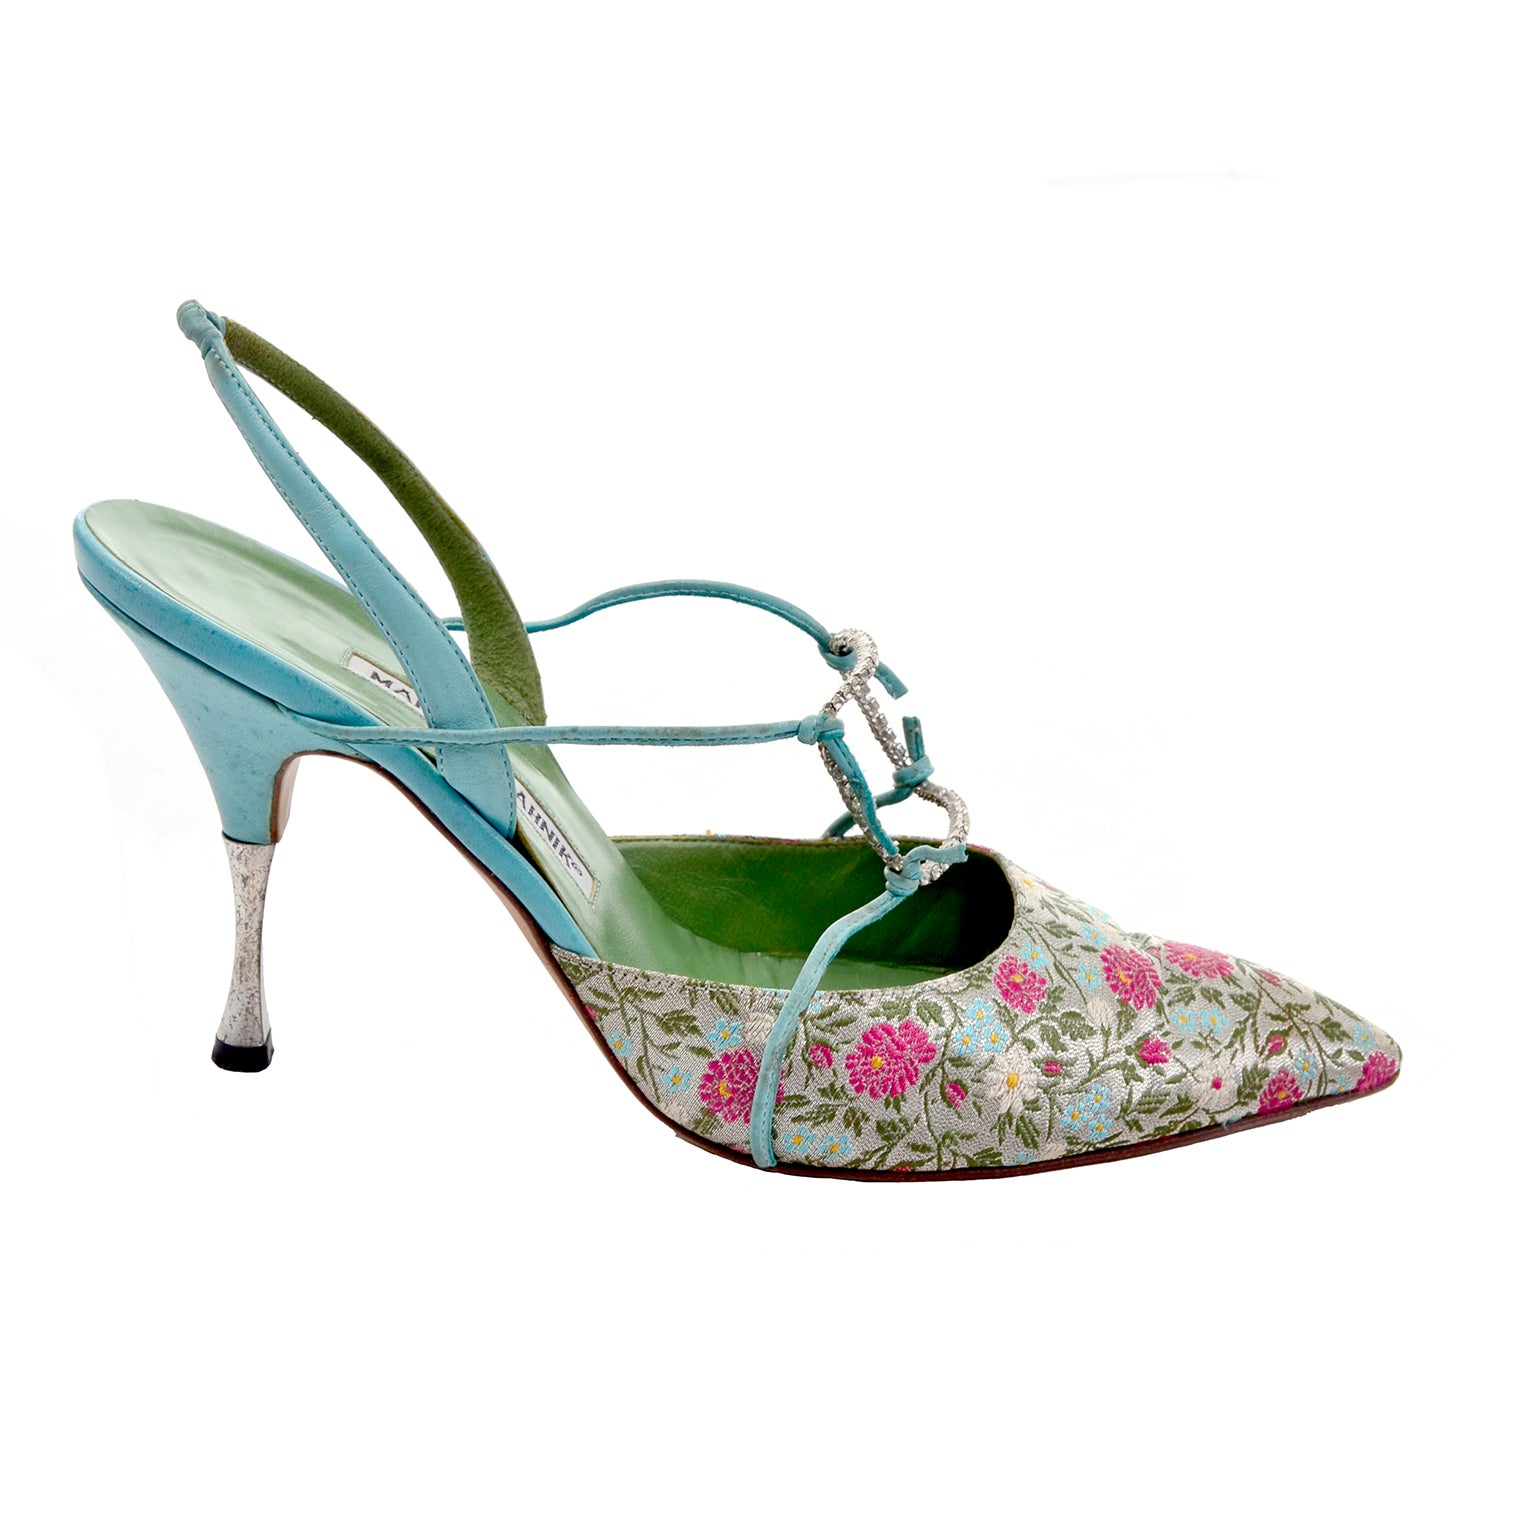 386ce629025 Manolo Blahnik Vintage Floral Shoes Size 40 Rhinestones at 1stdibs